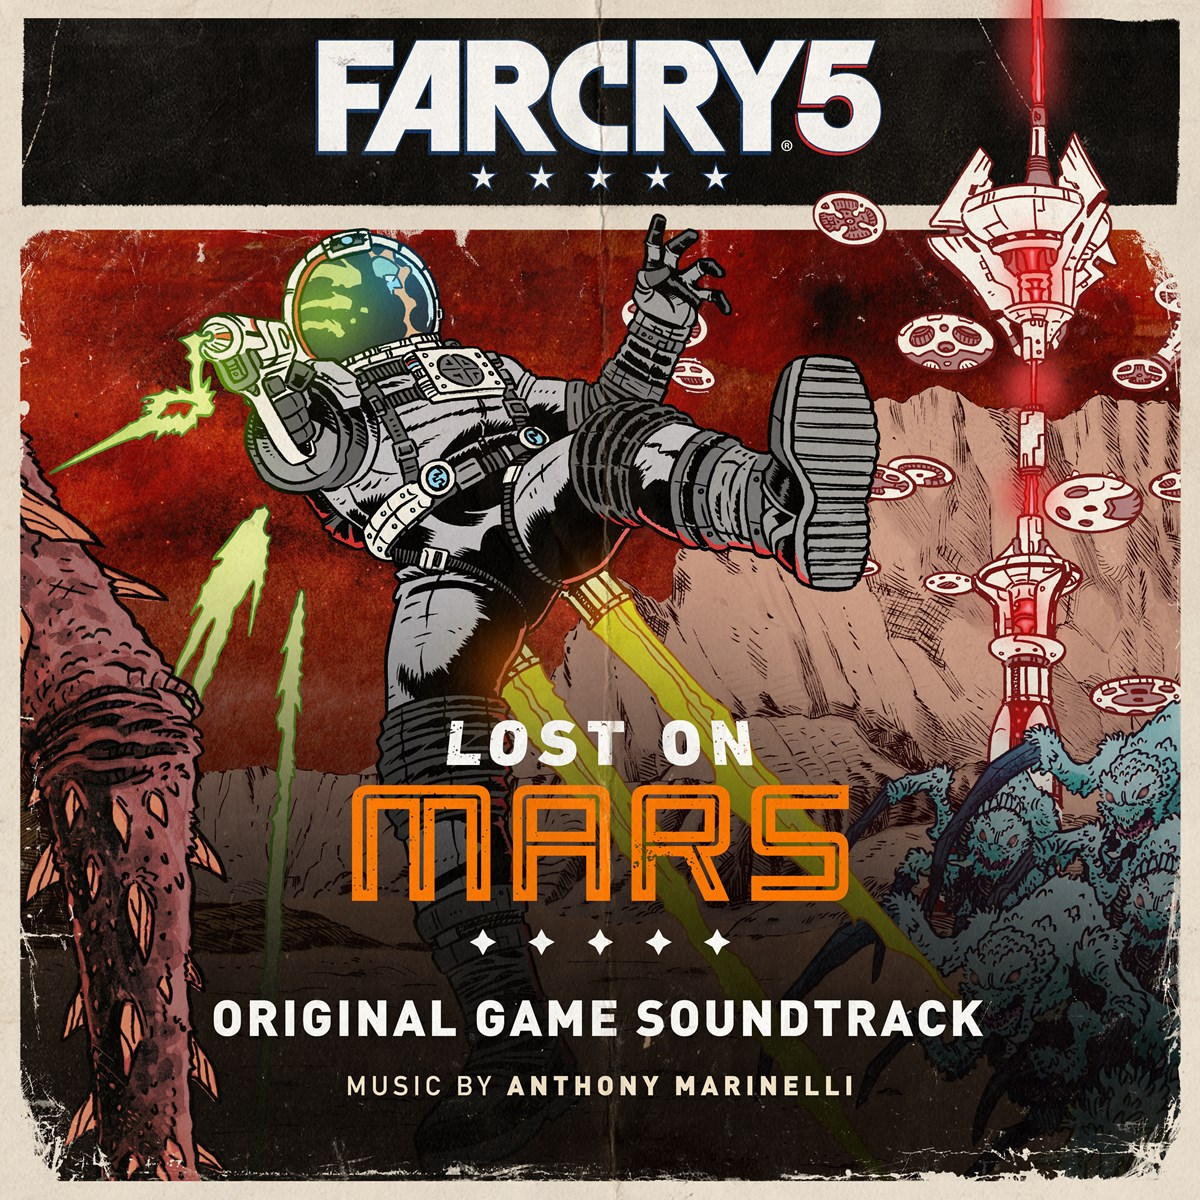 FC5_DLC2_Mars_Soundtrack_Cover_Art_1531825216.jpg